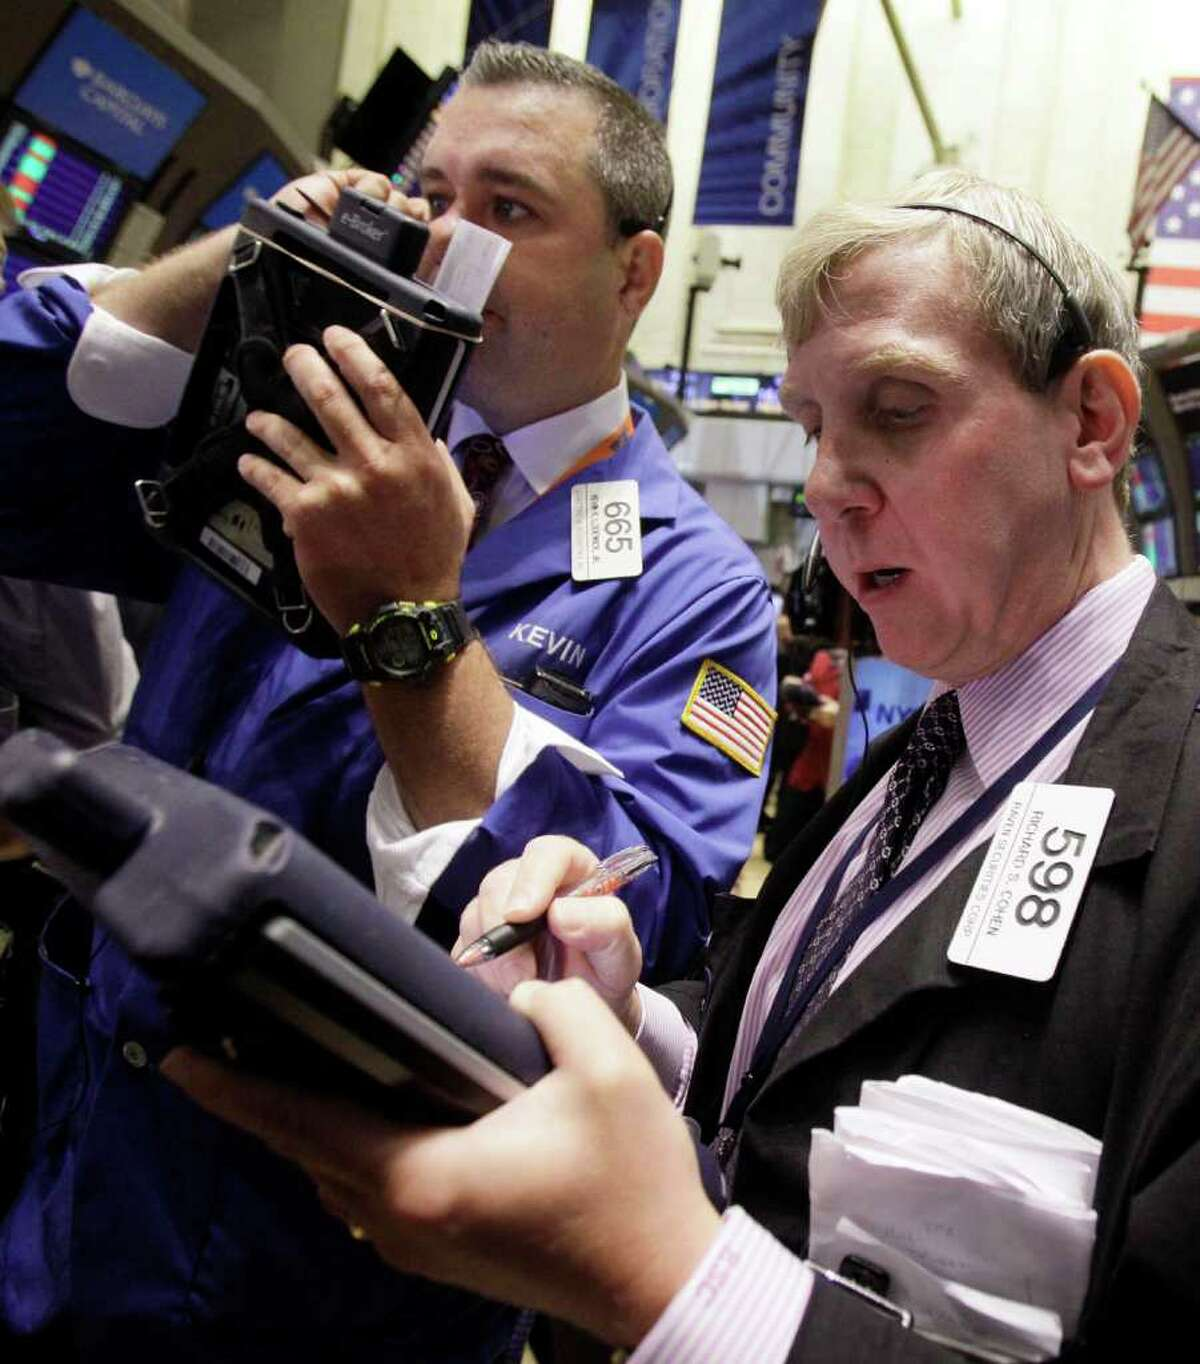 Richard Cohen, right, works with a fellow trader on the floor of the New York Stock Exchange Monday, Aug. 15, 2011. (AP Photo/Richard Drew)